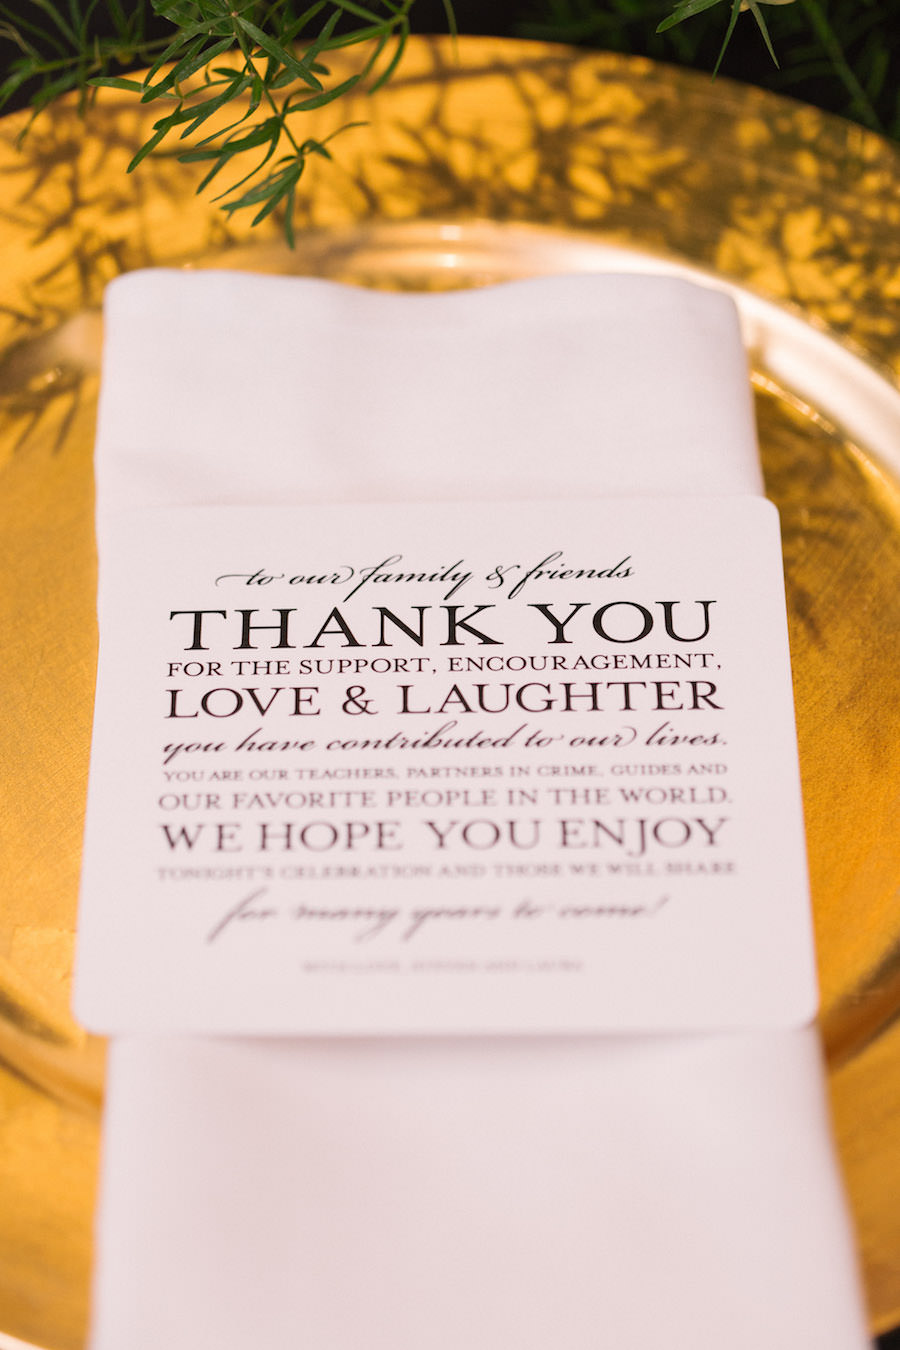 Tampa Wedding Thank You Cards On Gold Charger Plate